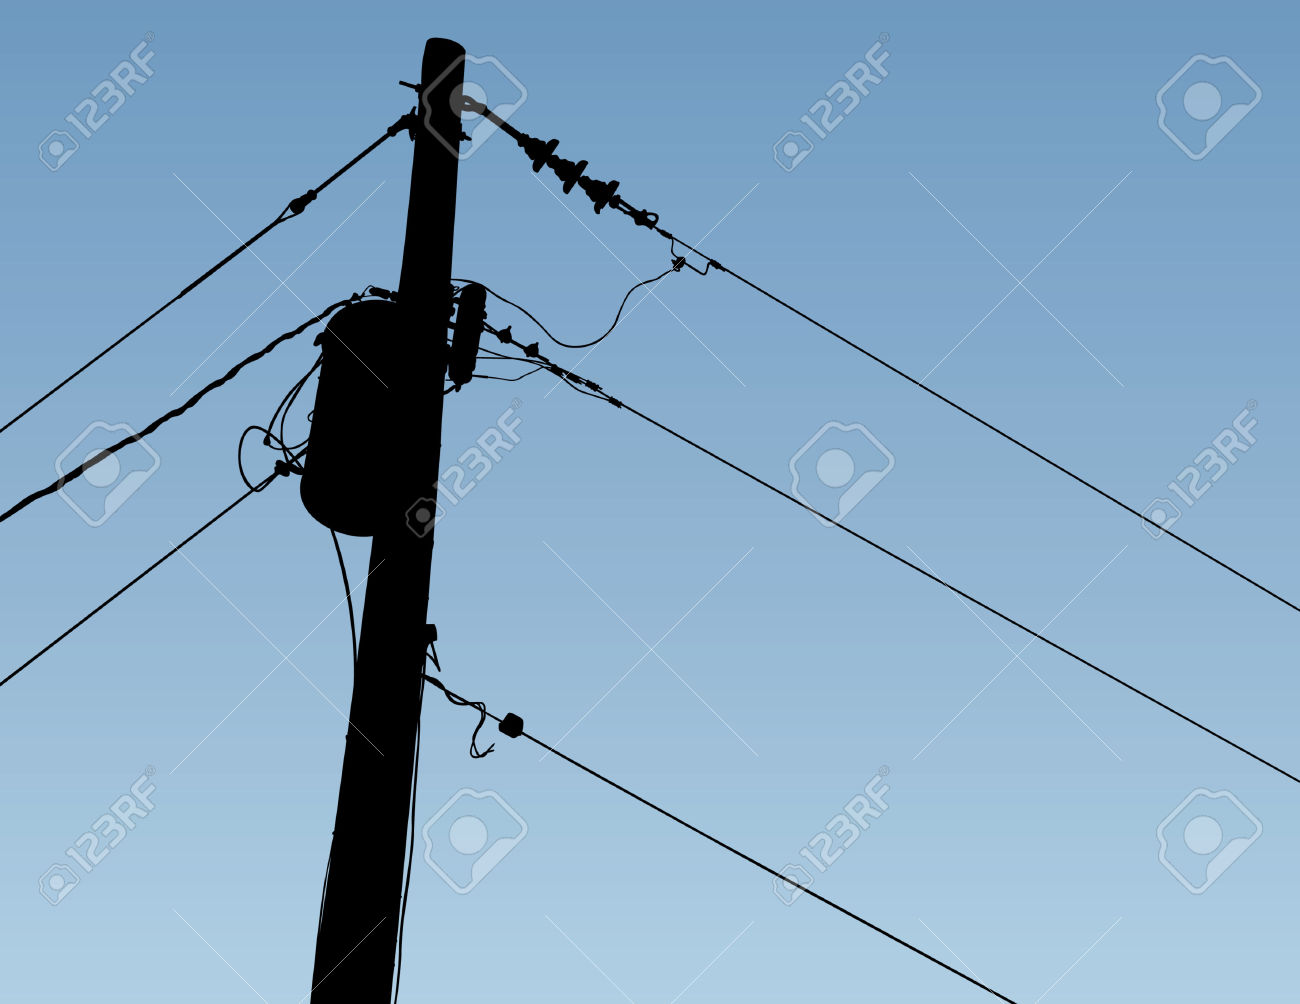 Pole And Wires Silhouette Royalty Free Cliparts, Vectors, And.